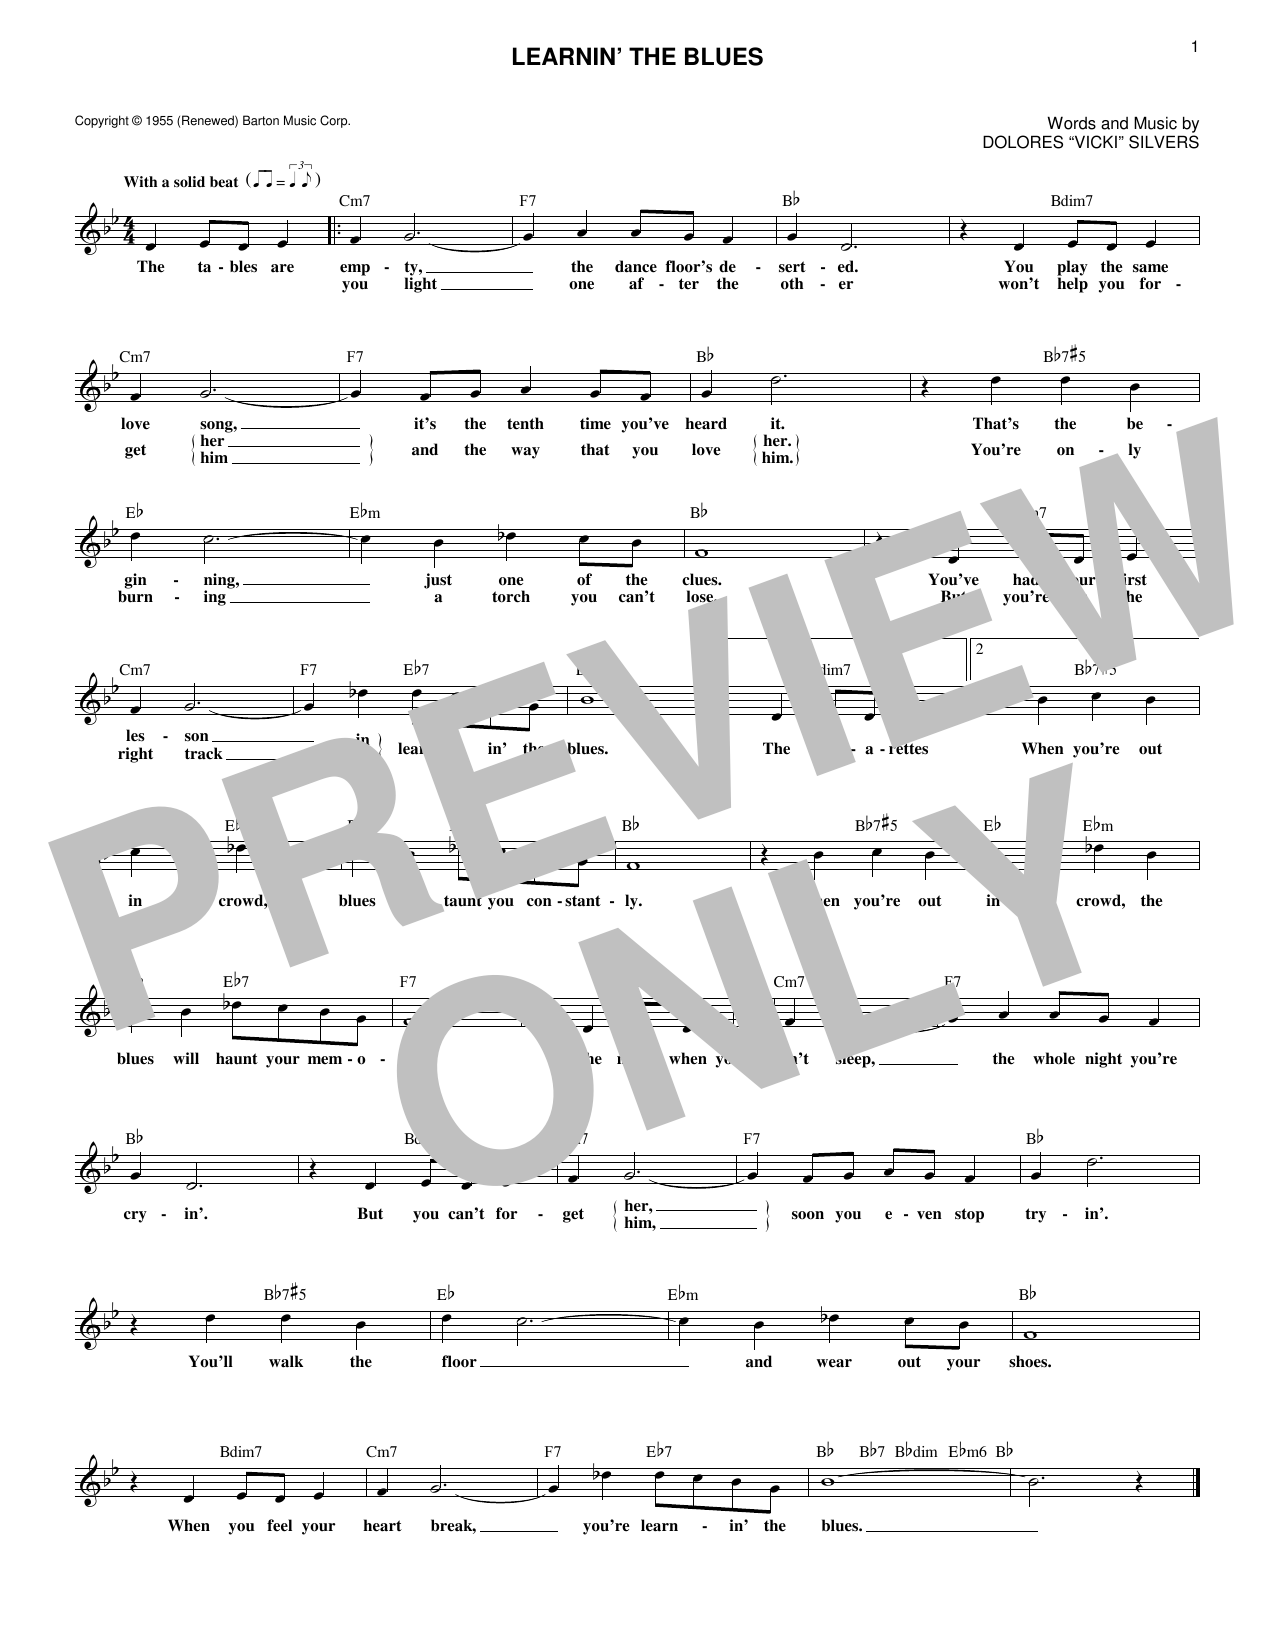 Rosemary Clooney Learnin' The Blues sheet music notes and chords. Download Printable PDF.